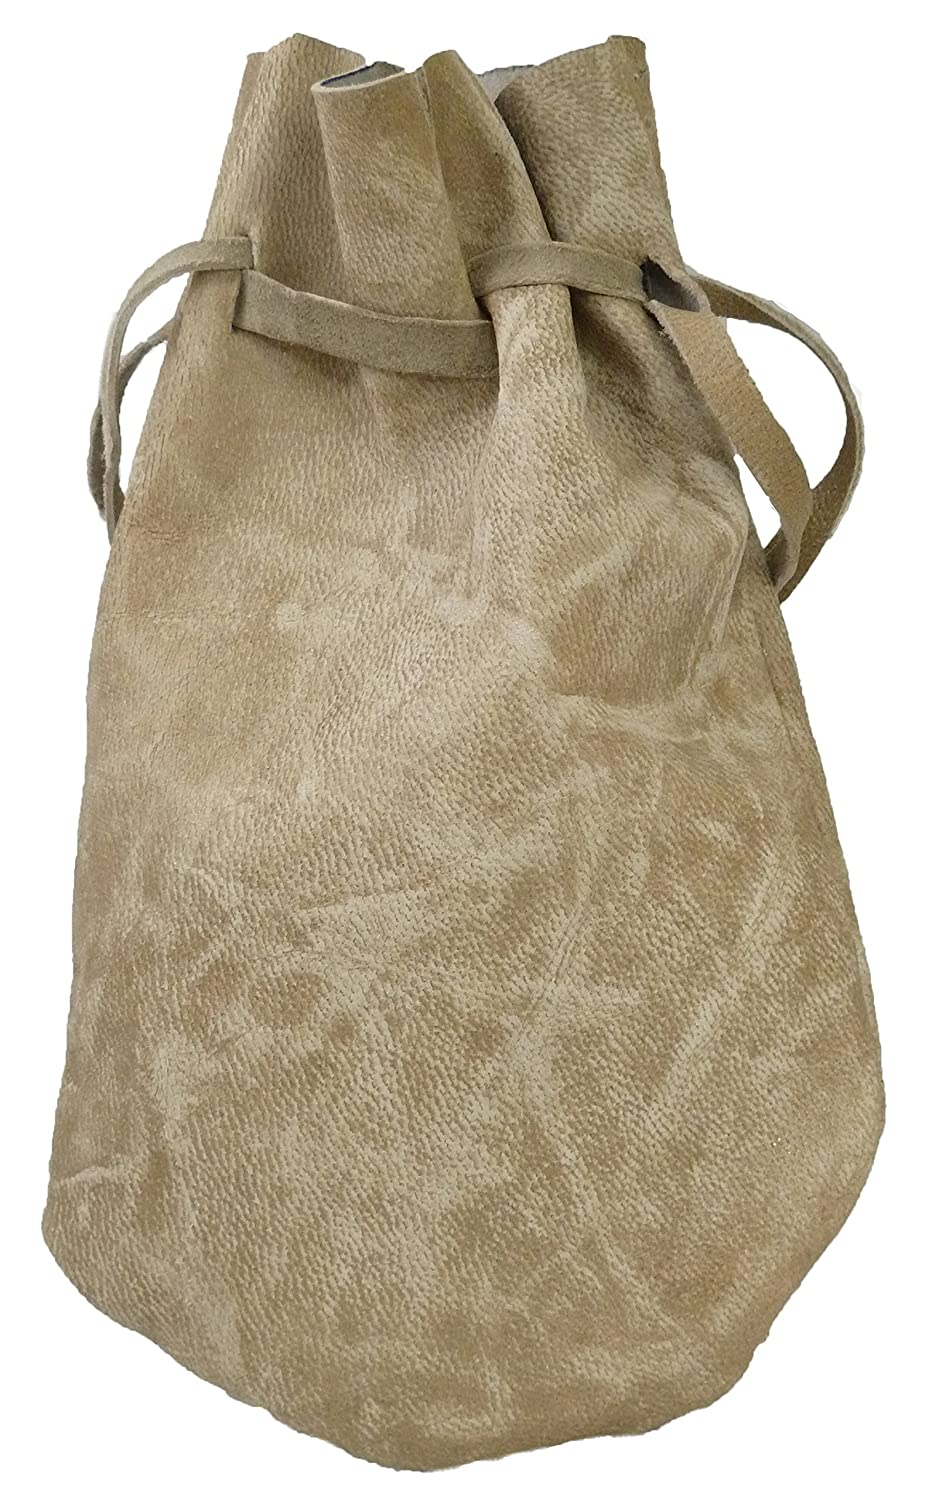 Pouch Drawstring Leather 5 X 7.5 Inches, Natural Dappled